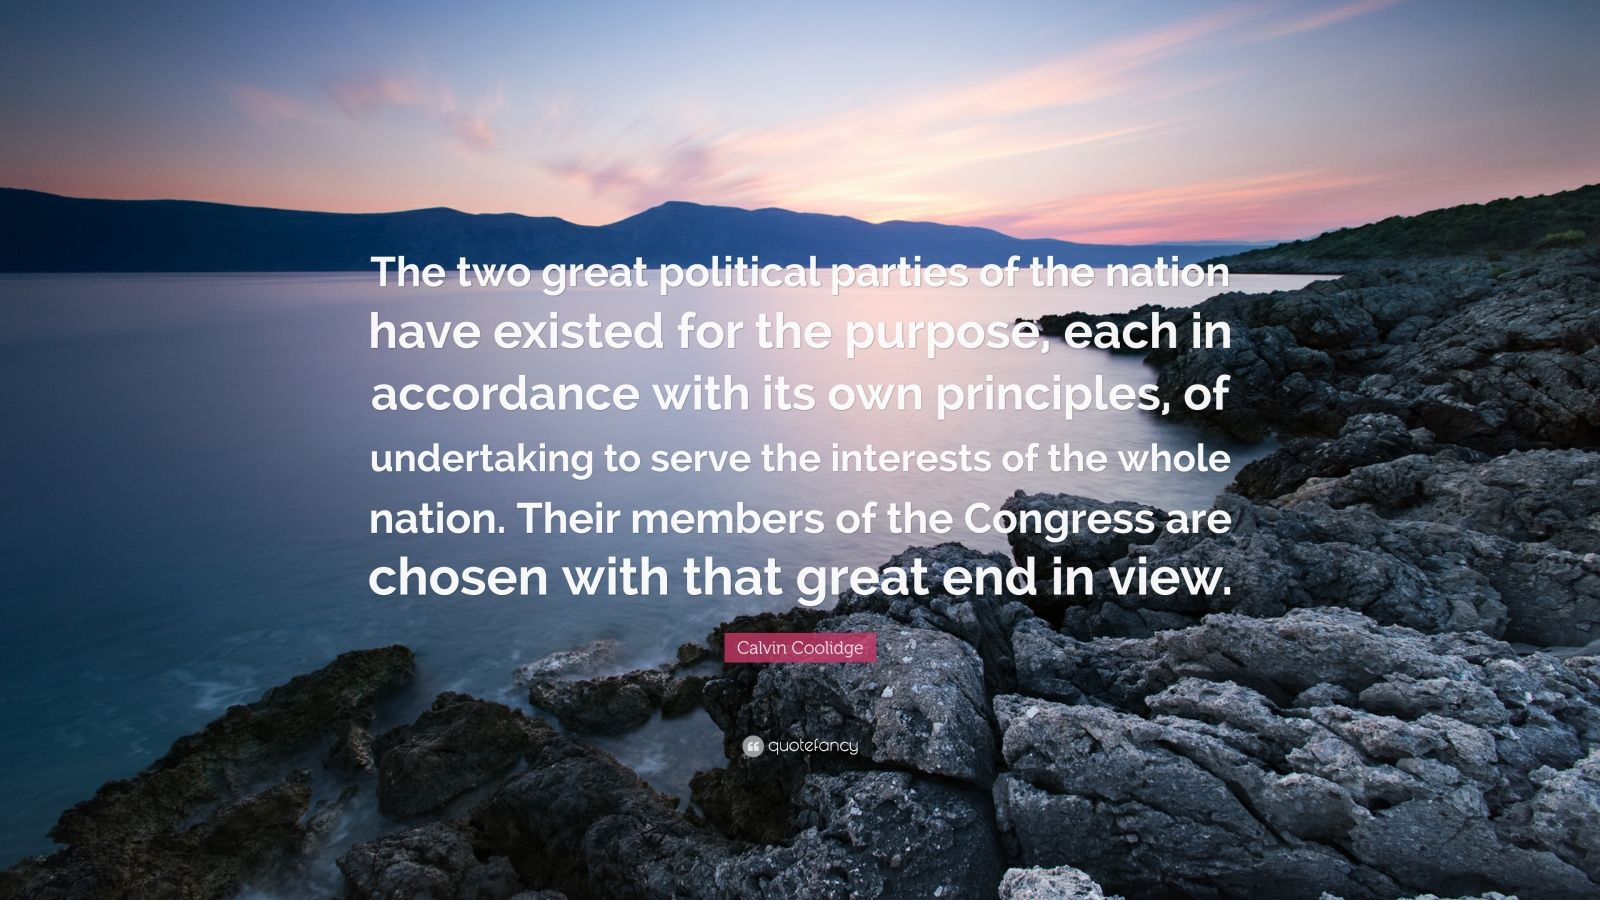 """Calvin Coolidge Quote: """"The two great political parties of the nation have existed for the purpose, each in accordance with its own principles, of undertaking to serve the interests of the whole nation. Their members of the Congress are chosen with that great end in view."""""""